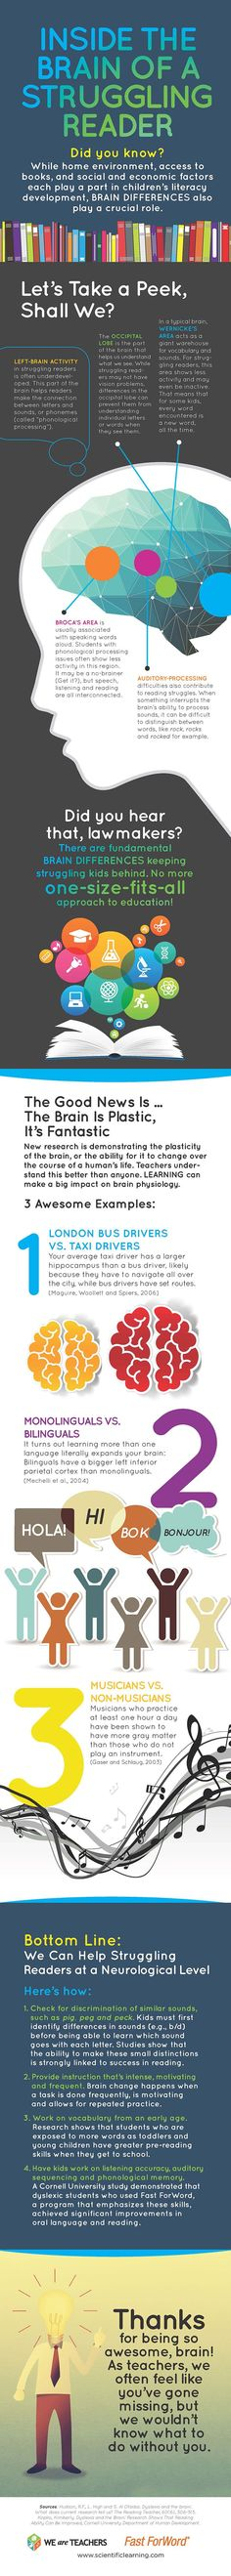 Scientific_Learning_Final-Brain-InfoPoster